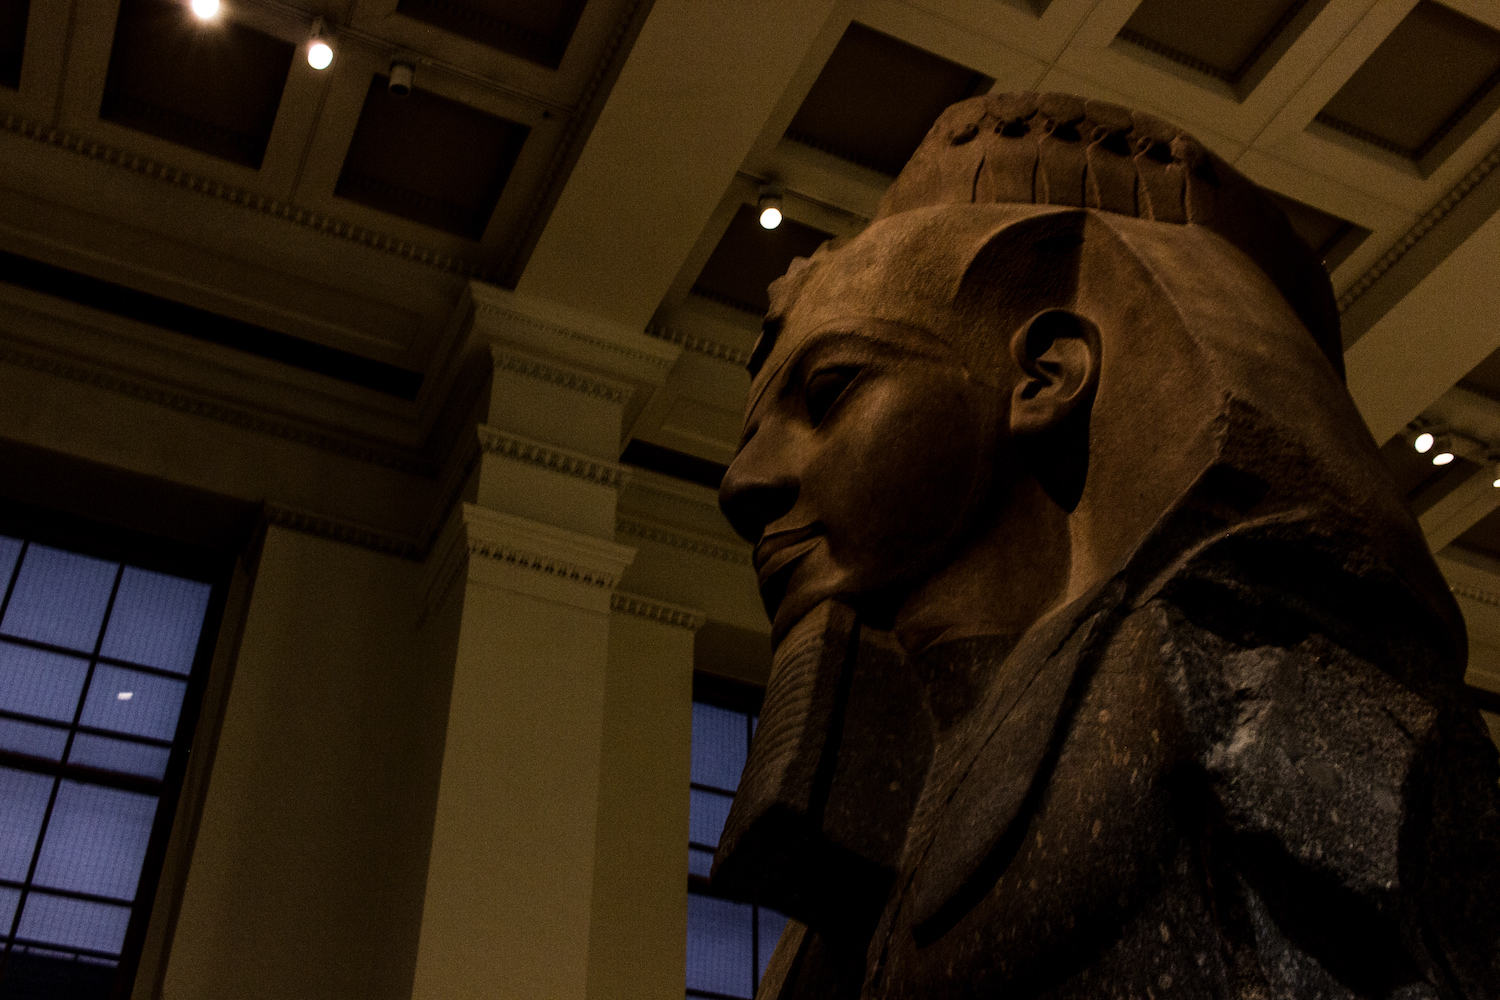 Professional Photography Stone Sculpture From Kemet Egypt Close-Up Of King Ramses II In British Museum London